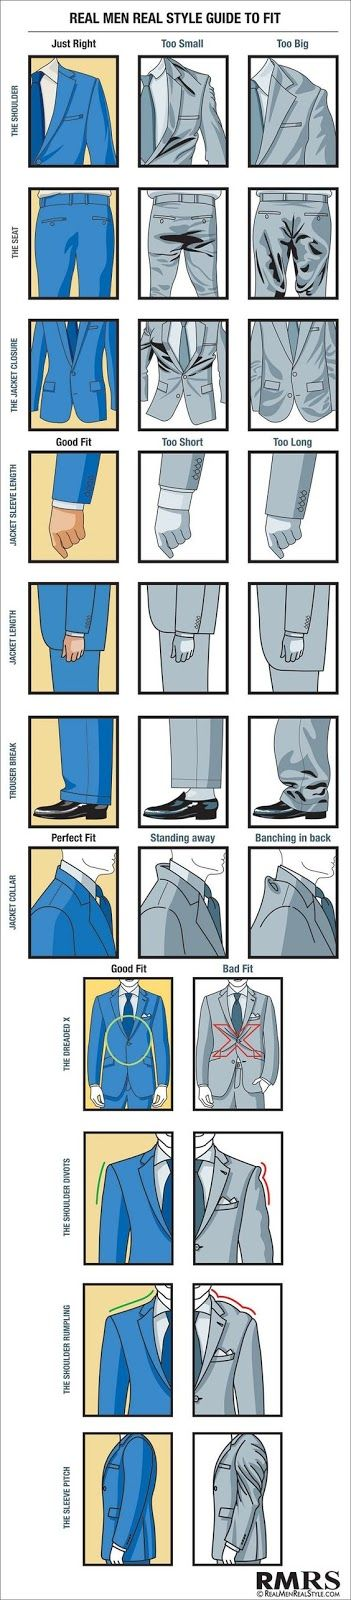 Gentlemen Guide For Timeless Style (InfoGraphic) | NATURE WHISPER